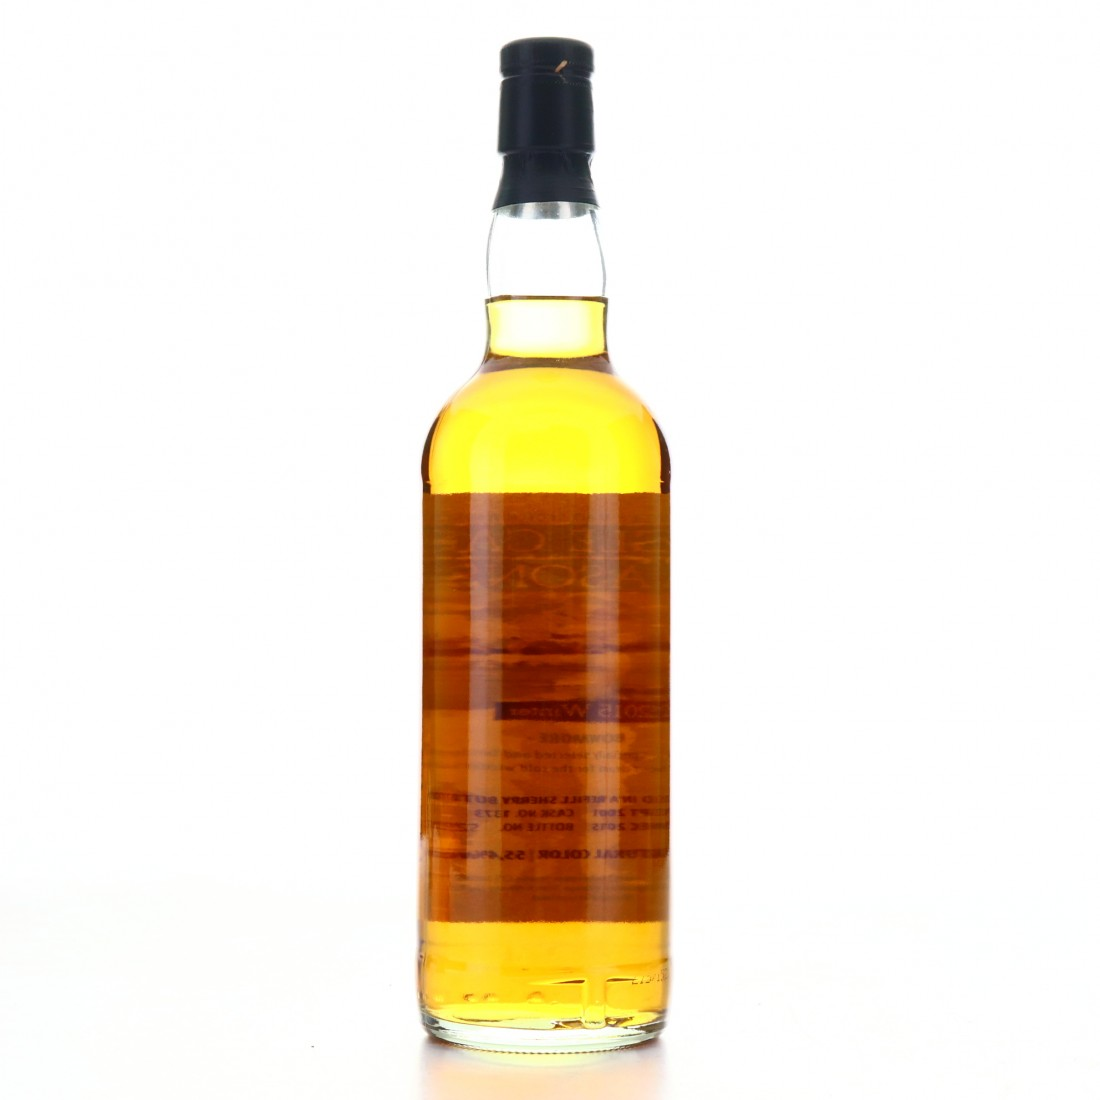 Bowmore 2001 Signatory Vintage / Single Cask Seasons